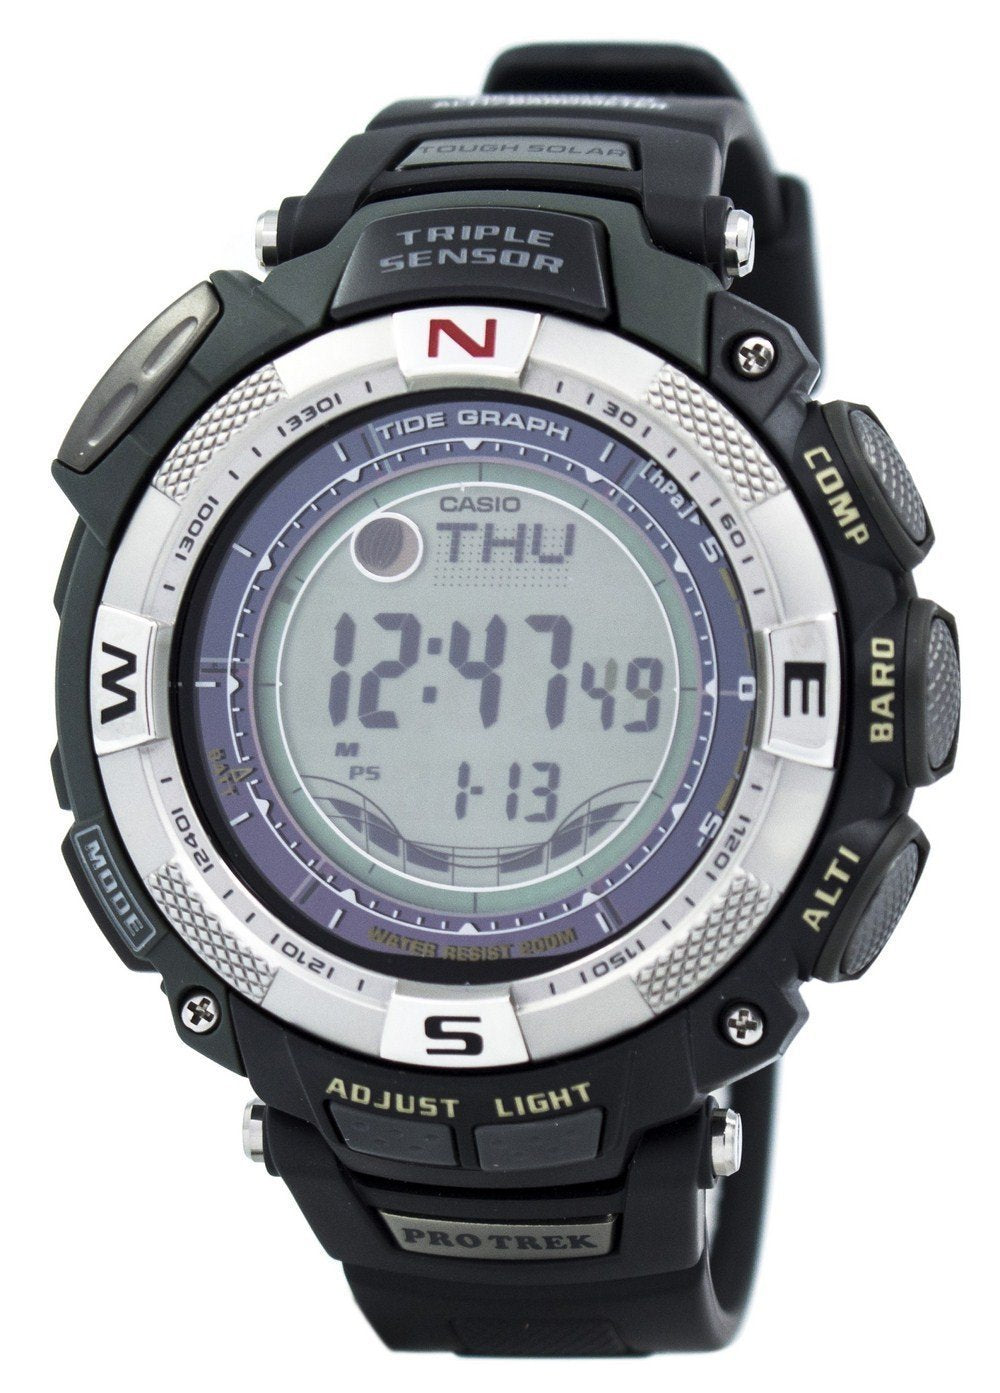 Casio Protrek Triple Sensor Tough Solar PRG-130-1V PRG130-1V PRG130 Tide Graph Watch